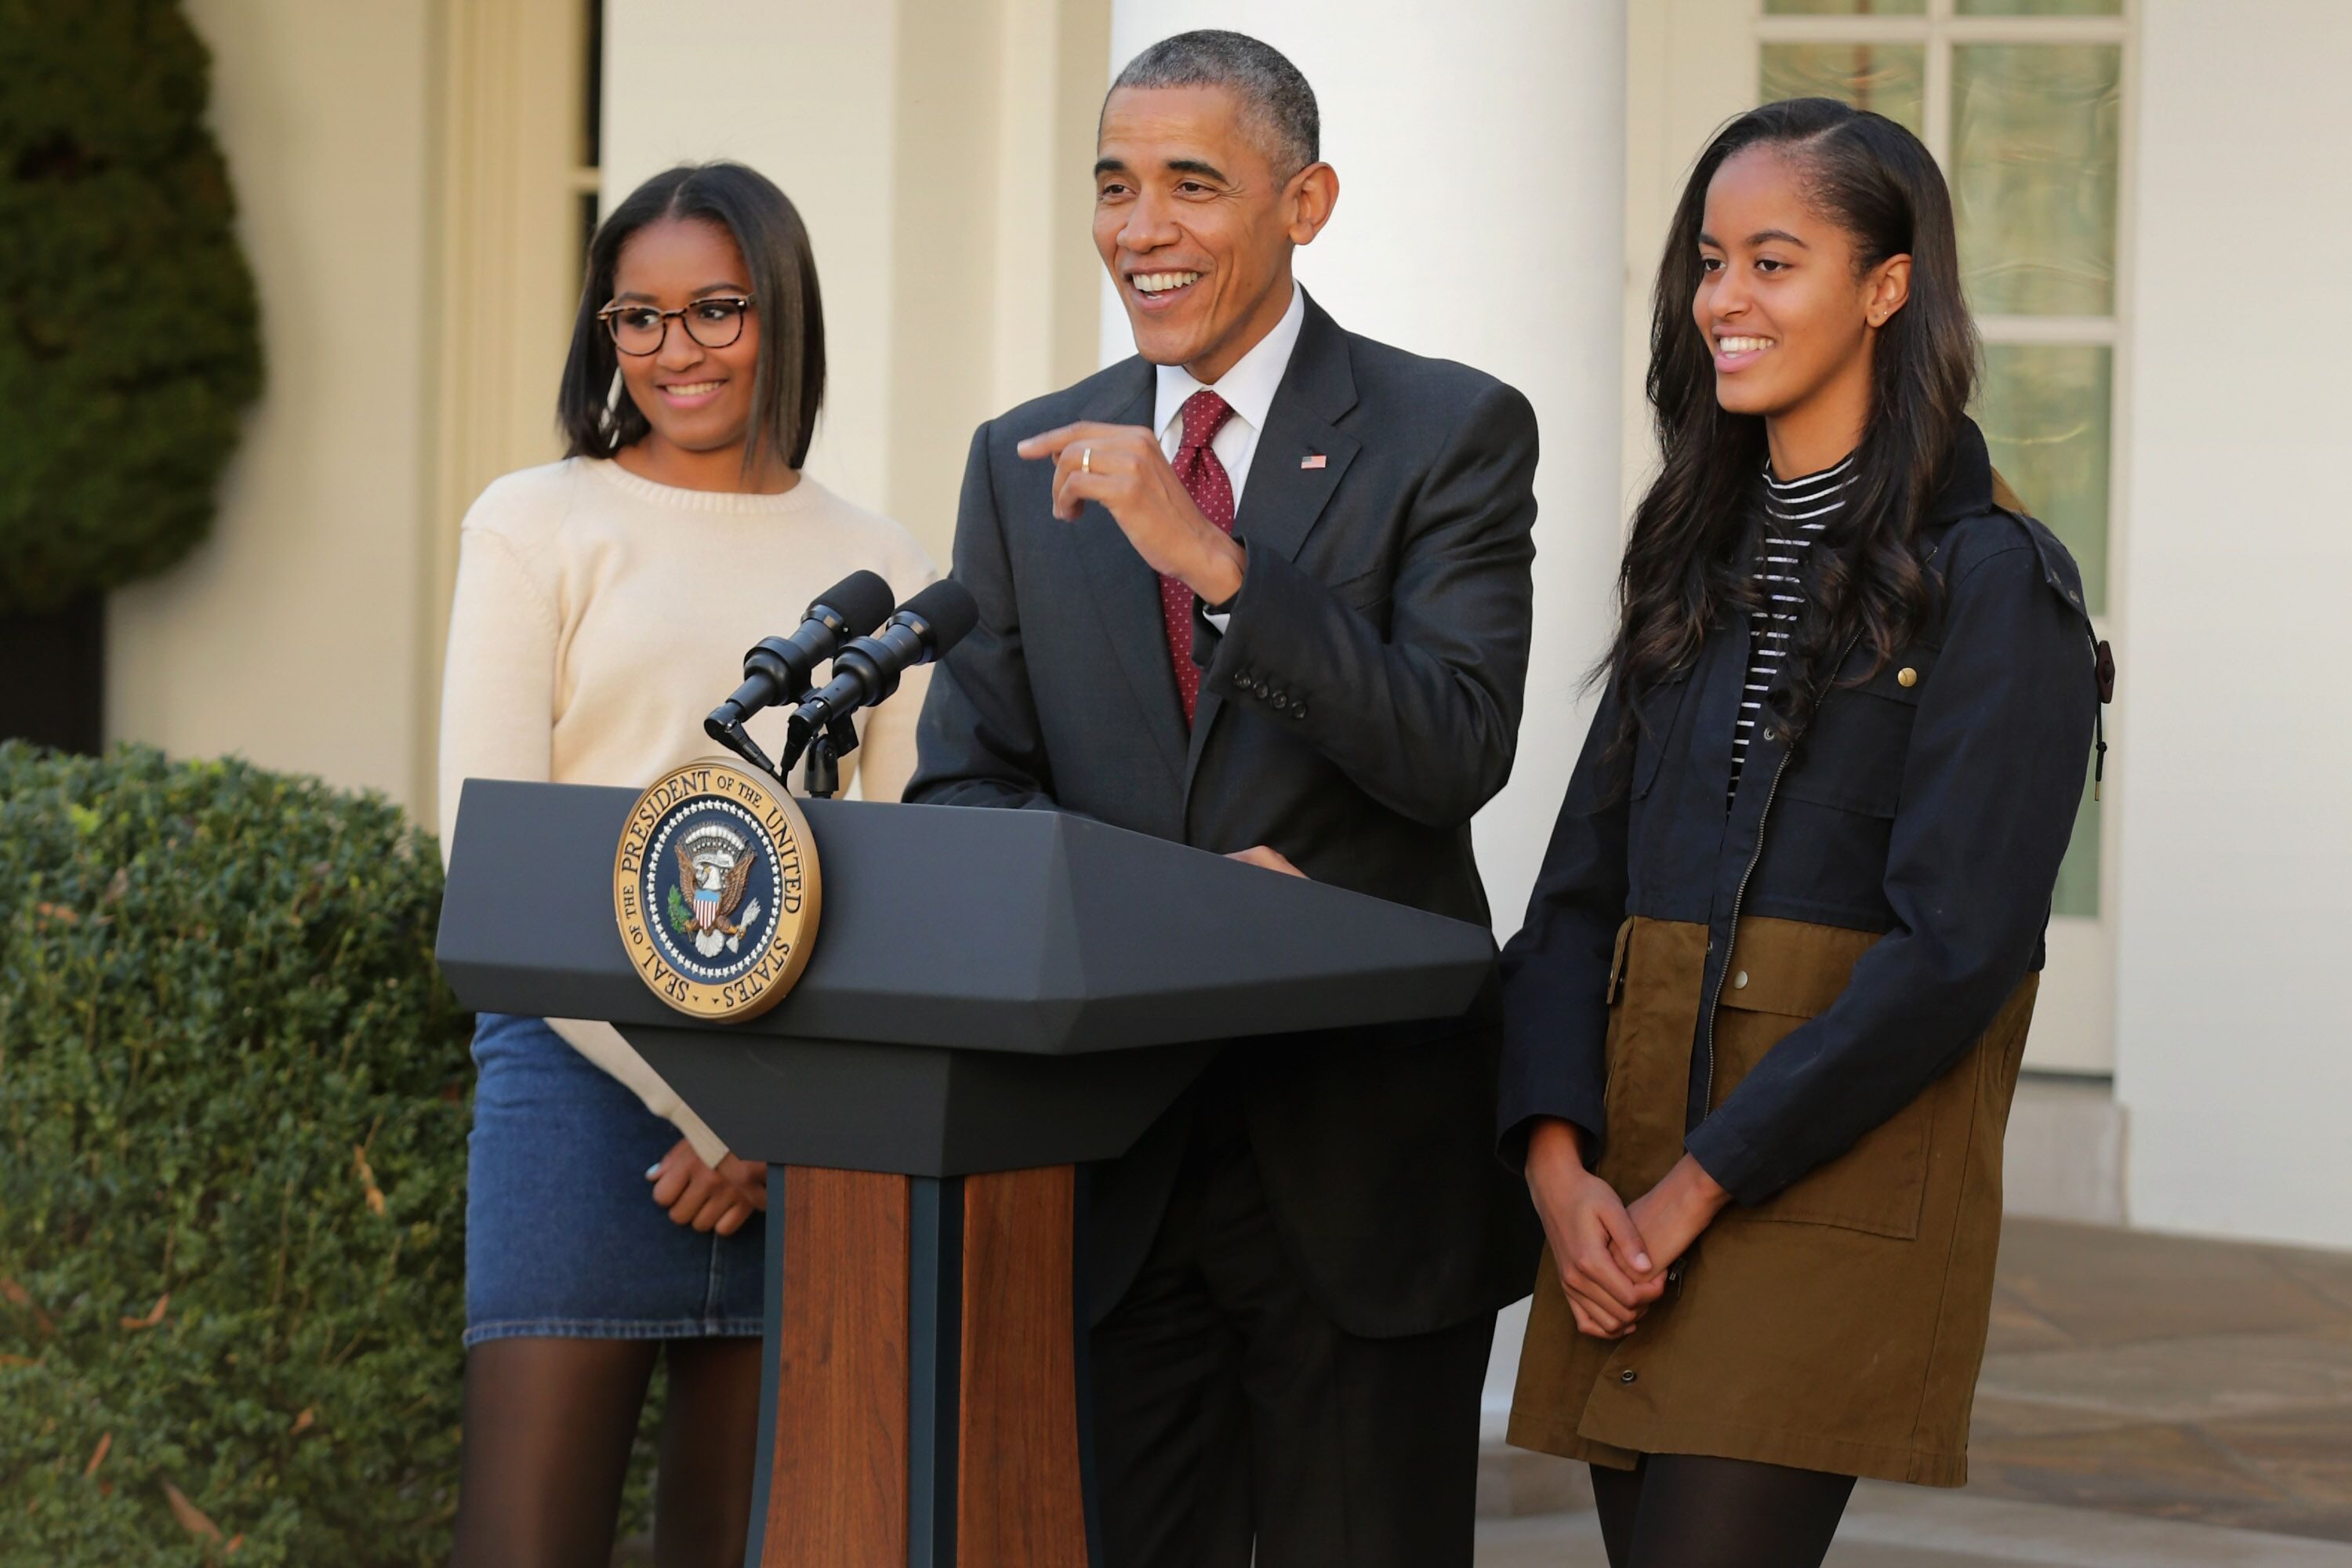 Barack Obama and his children Malia and Sasha at the White House | Source: Getty Images/GlobalImagesUkraine